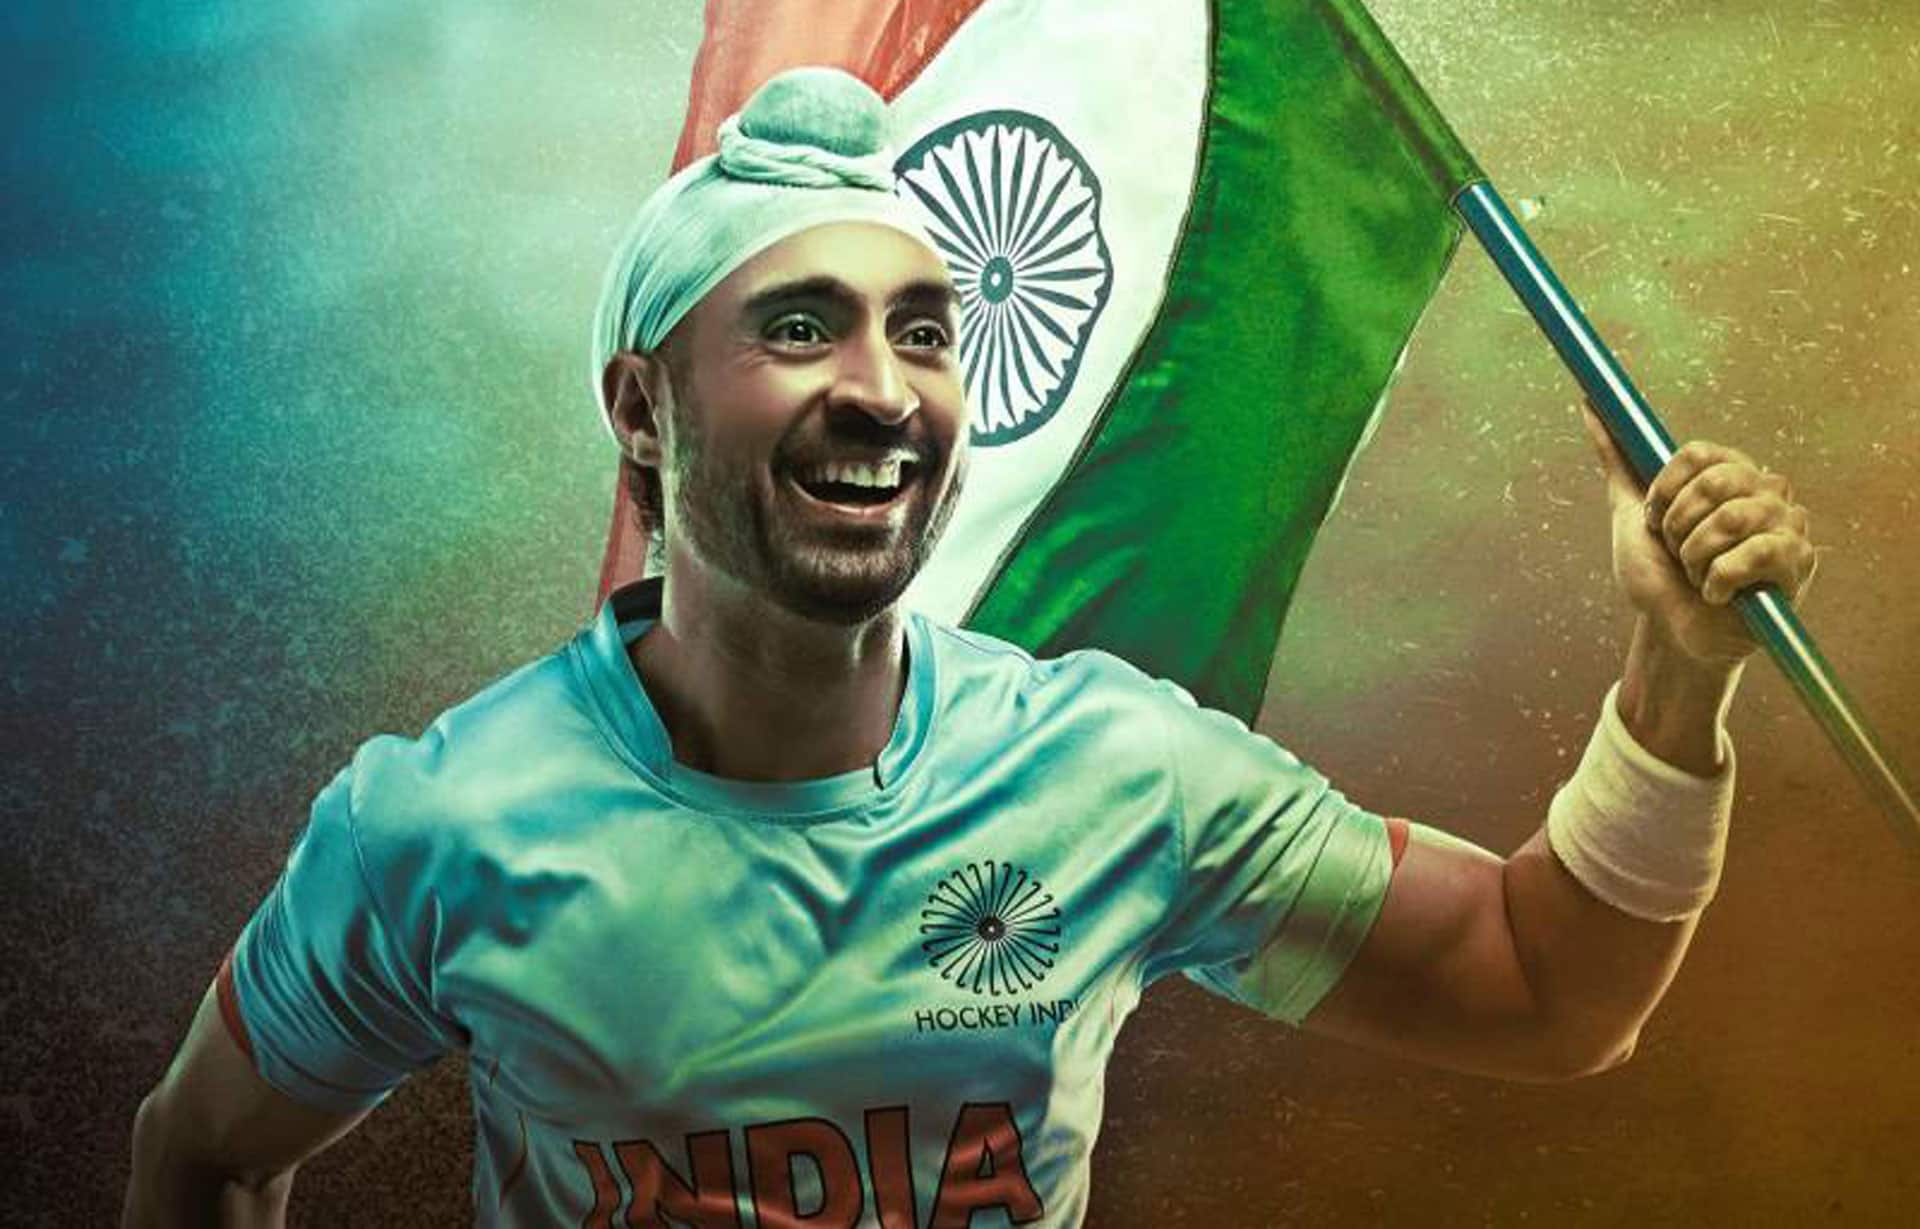 Soorma has hit theatres across Pakistan and Kuwait